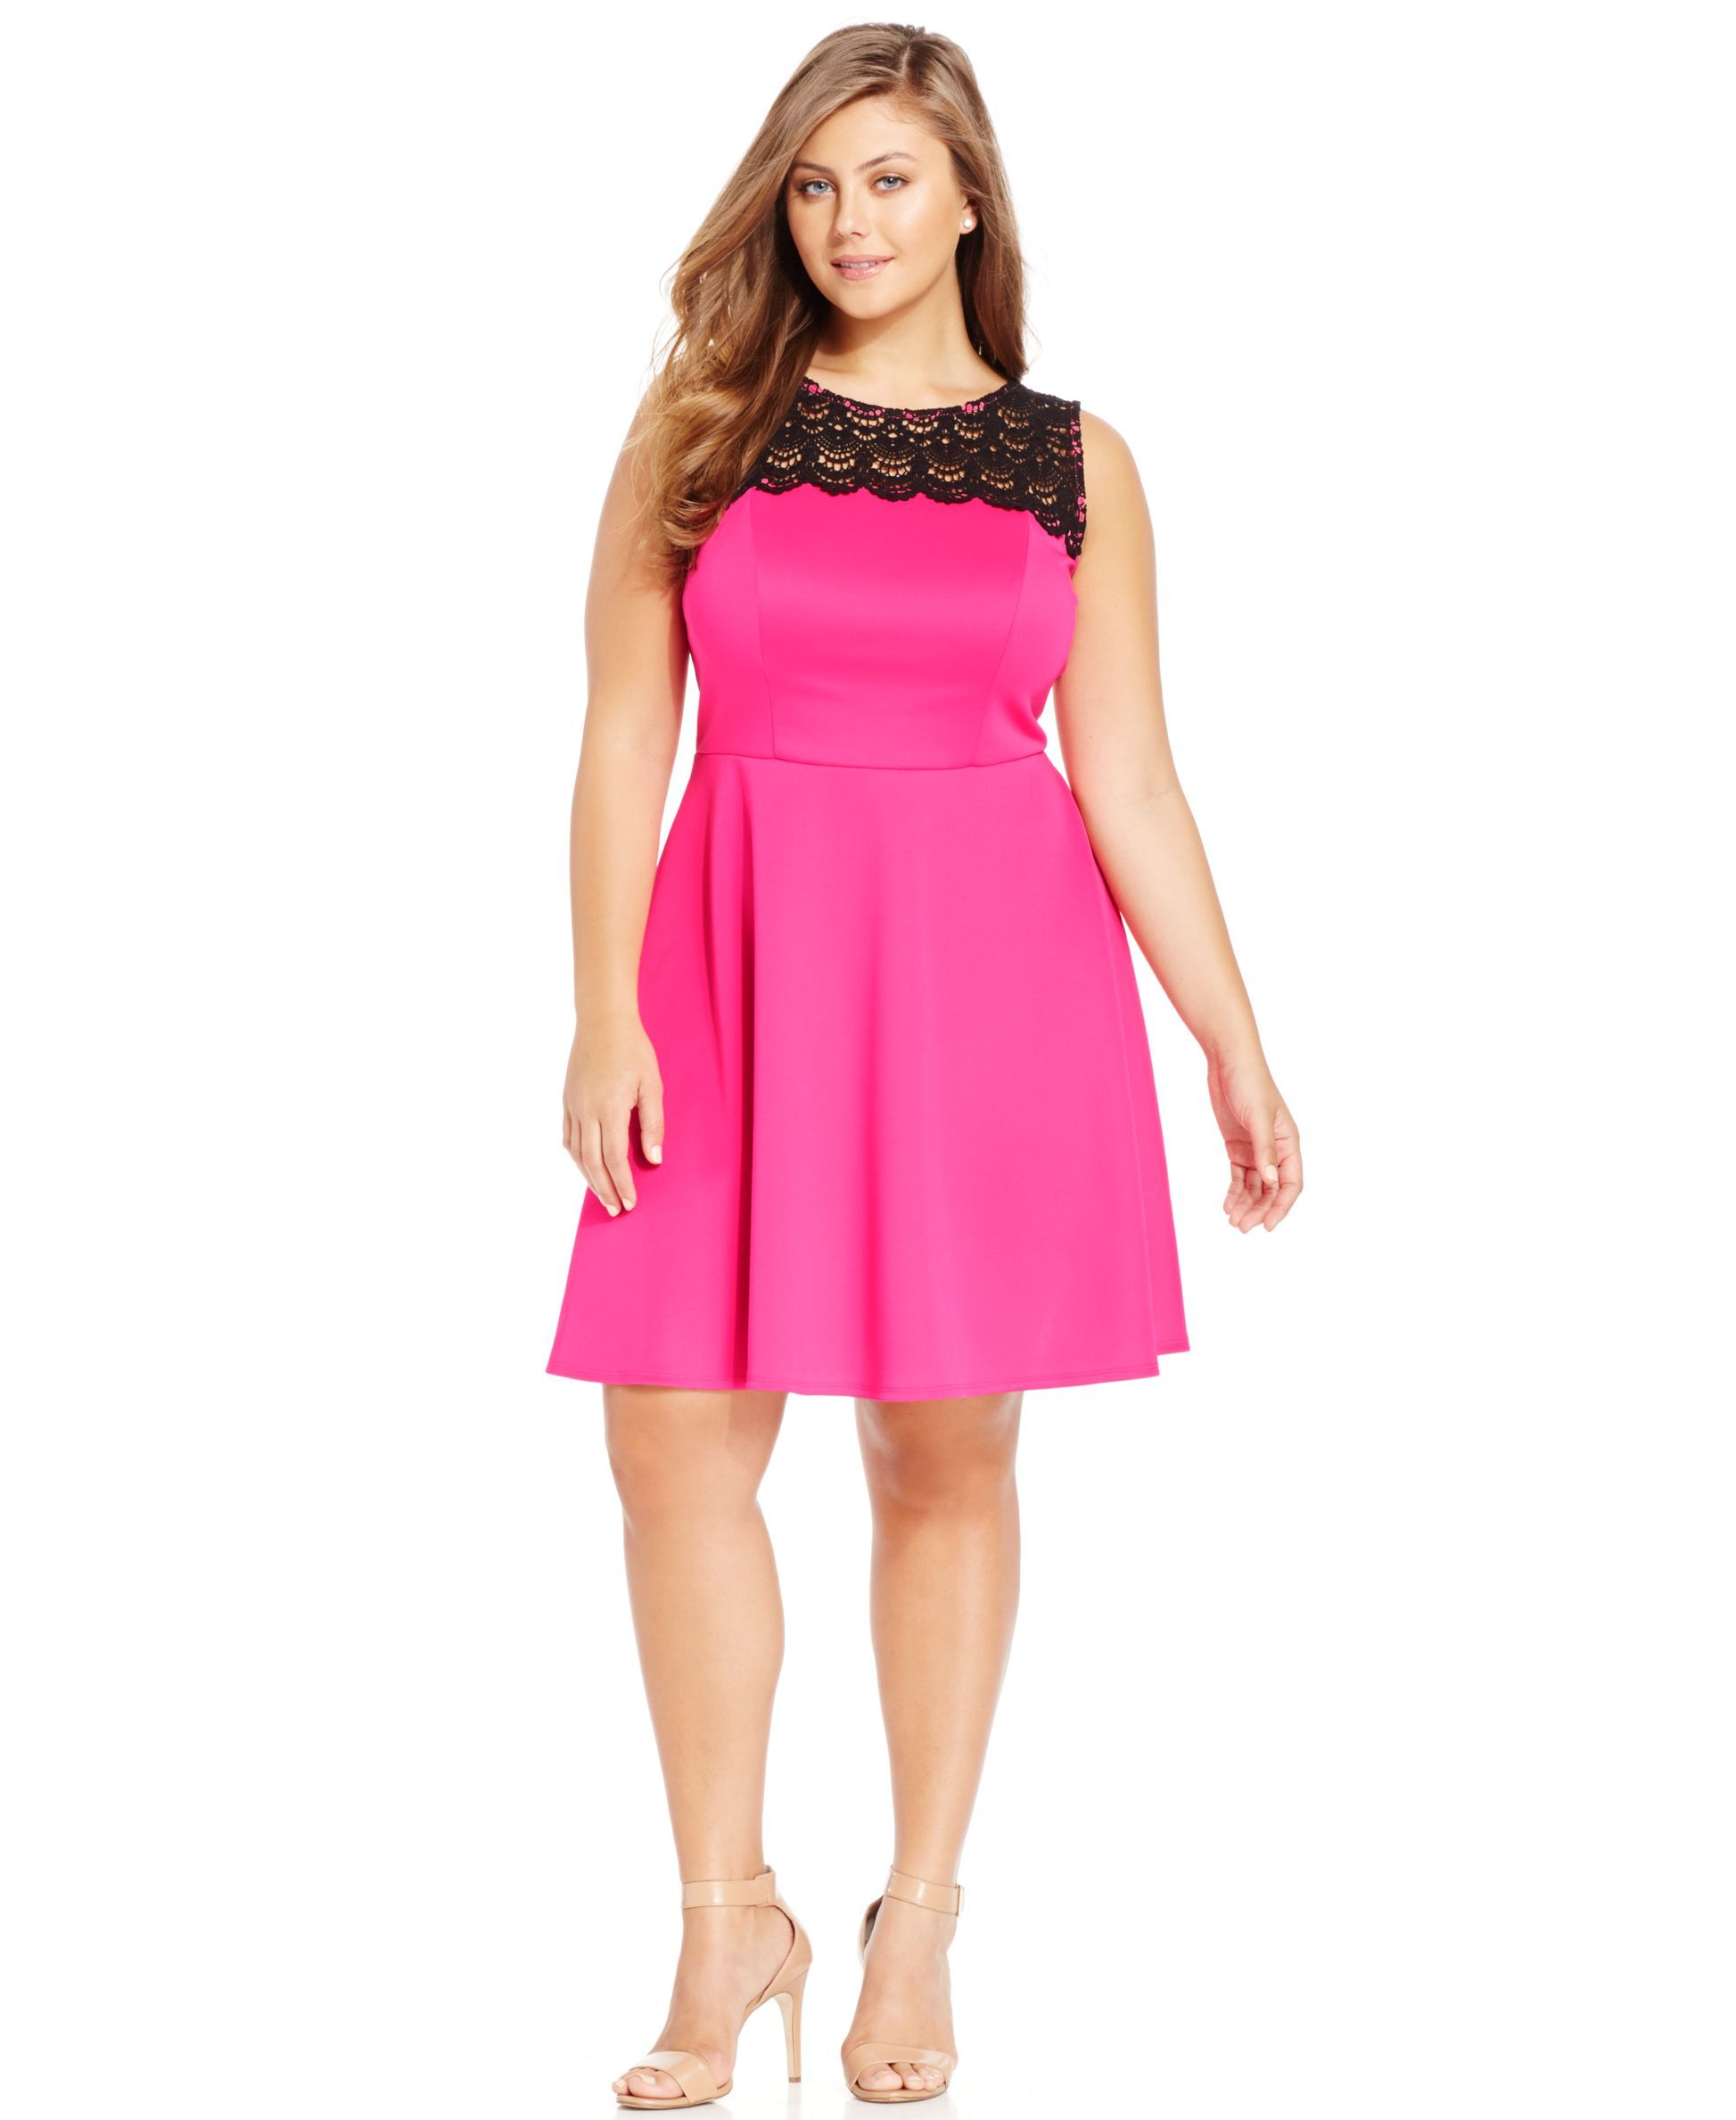 f7645bfa672d Trixxi Plus Size Lace Illusion A-Line Dress | Products | Dresses ...